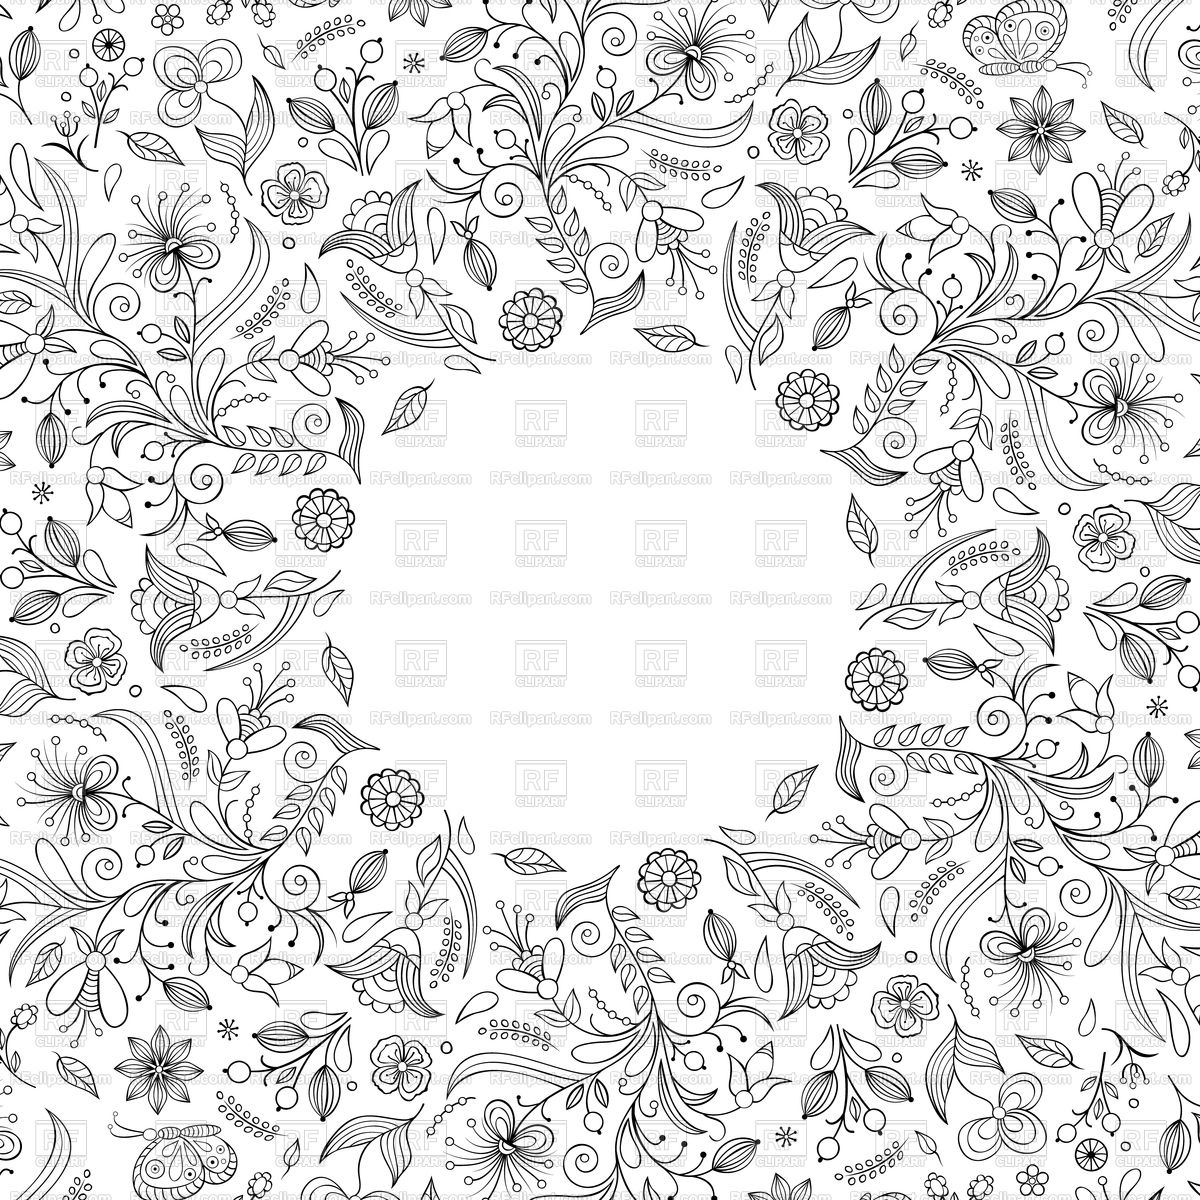 1200x1200 Invitation Card With Hand Drawn Flowers.vector Illustration